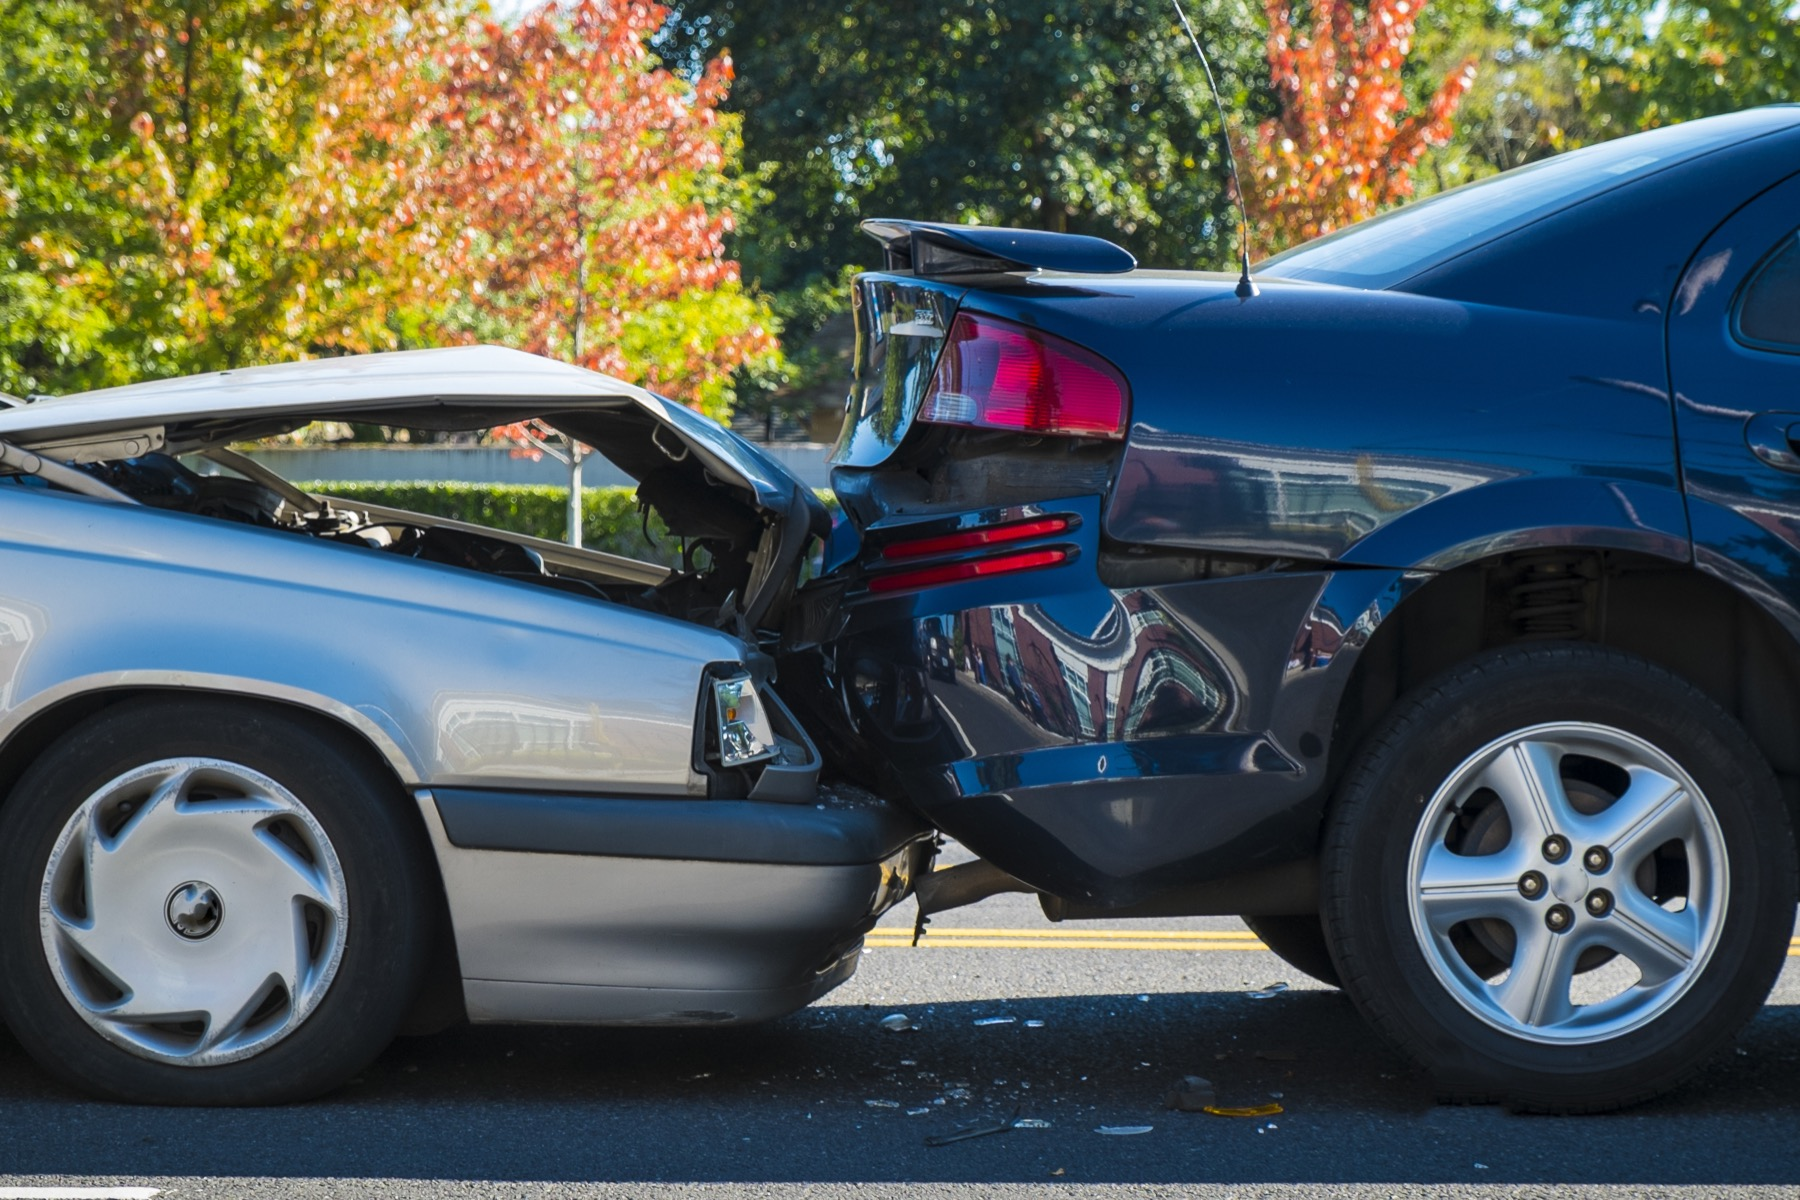 Most Common Places for Car Accidents to Happen